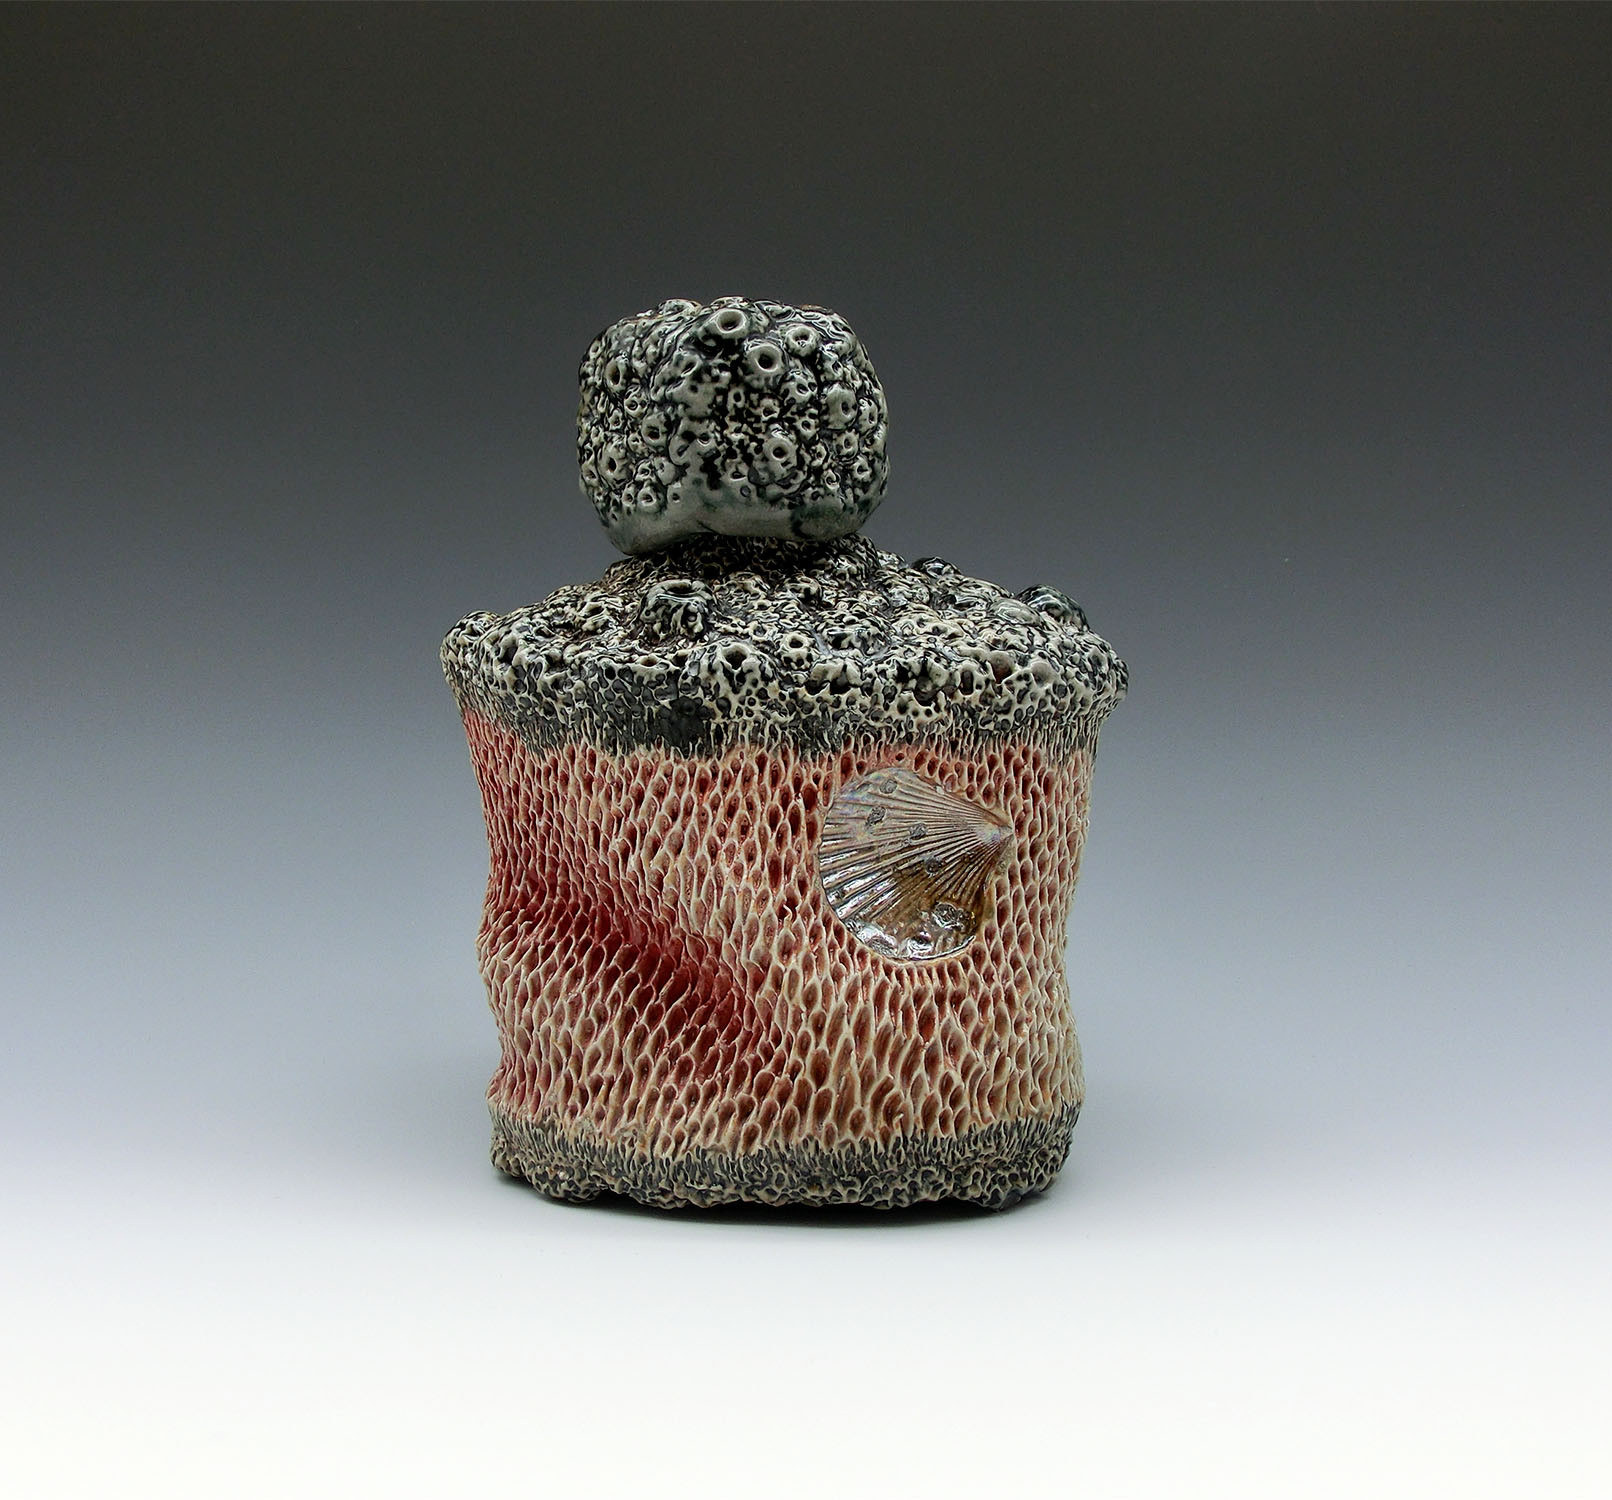 Siren's Vice 1, Domestic porcelain, black slip, mason stain, mother of pearl luster, glaze, cone 10 atmospheric fired, 6x4x2.5, 2020